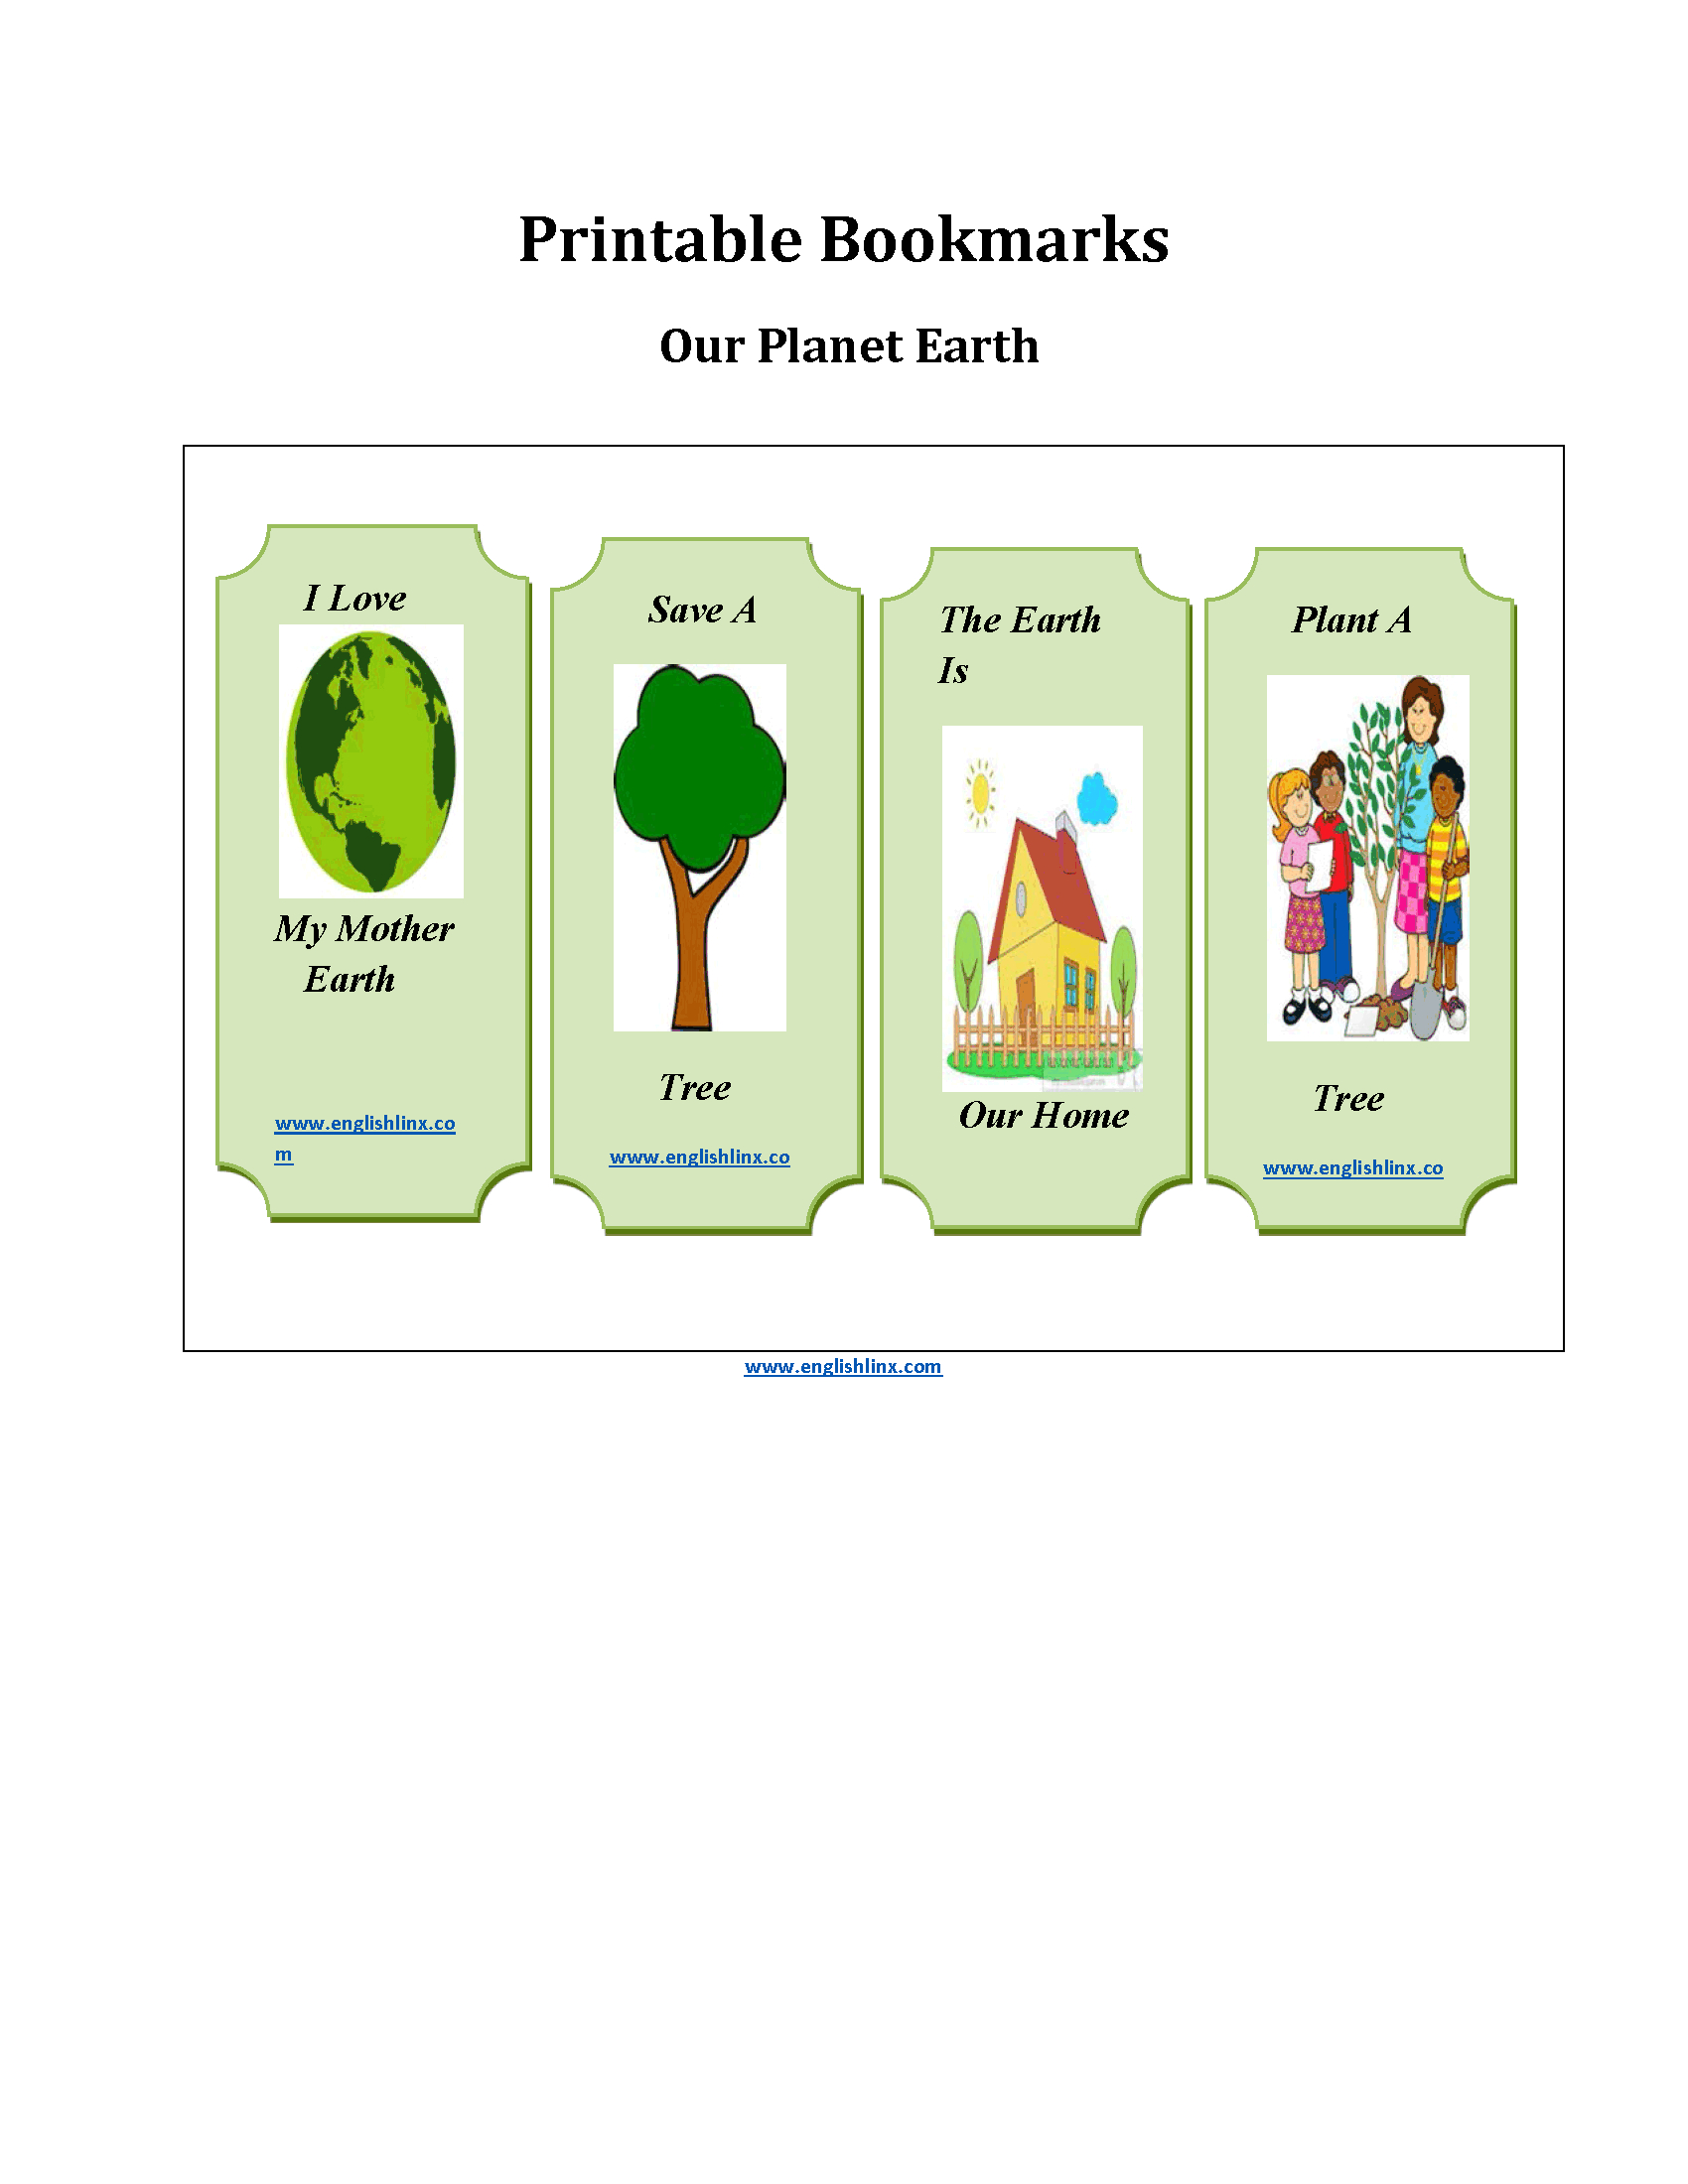 Printable Bookmarks Worksheets | Planet Earth Printable Bookmarks | Earth Printable Worksheets